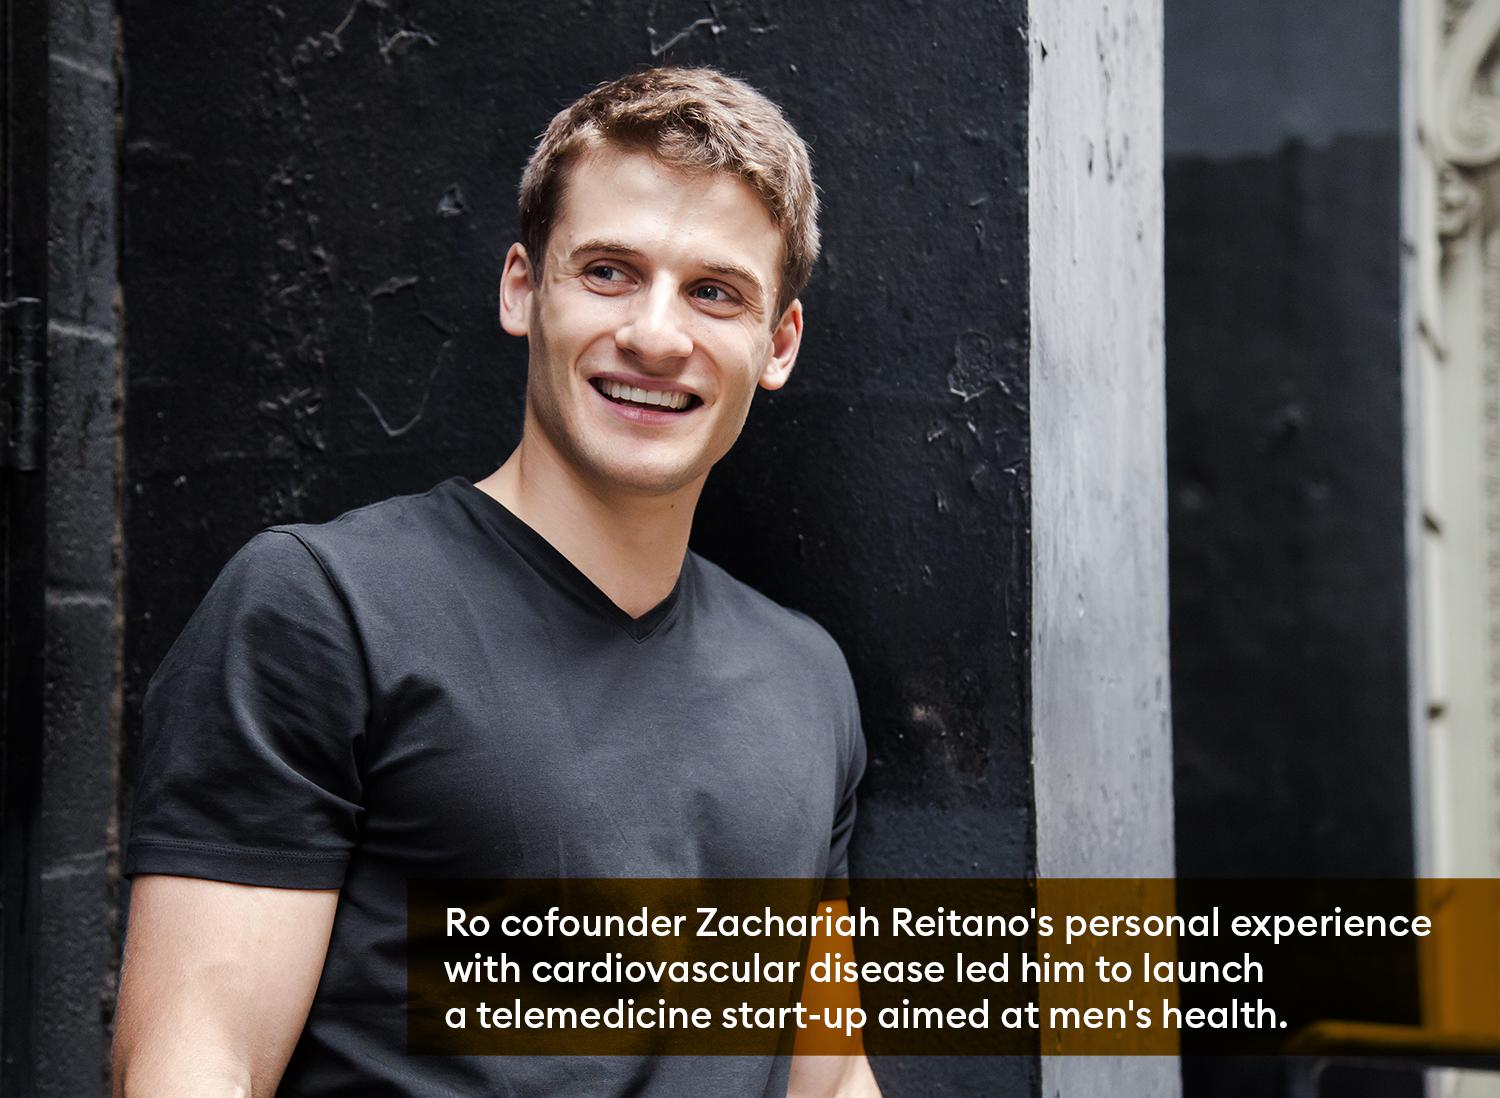 Ro cofounder Zachariah Reitano's personal experience  with cardiovascular disease led him to launch a telemedicine start-up aimed at men's health.